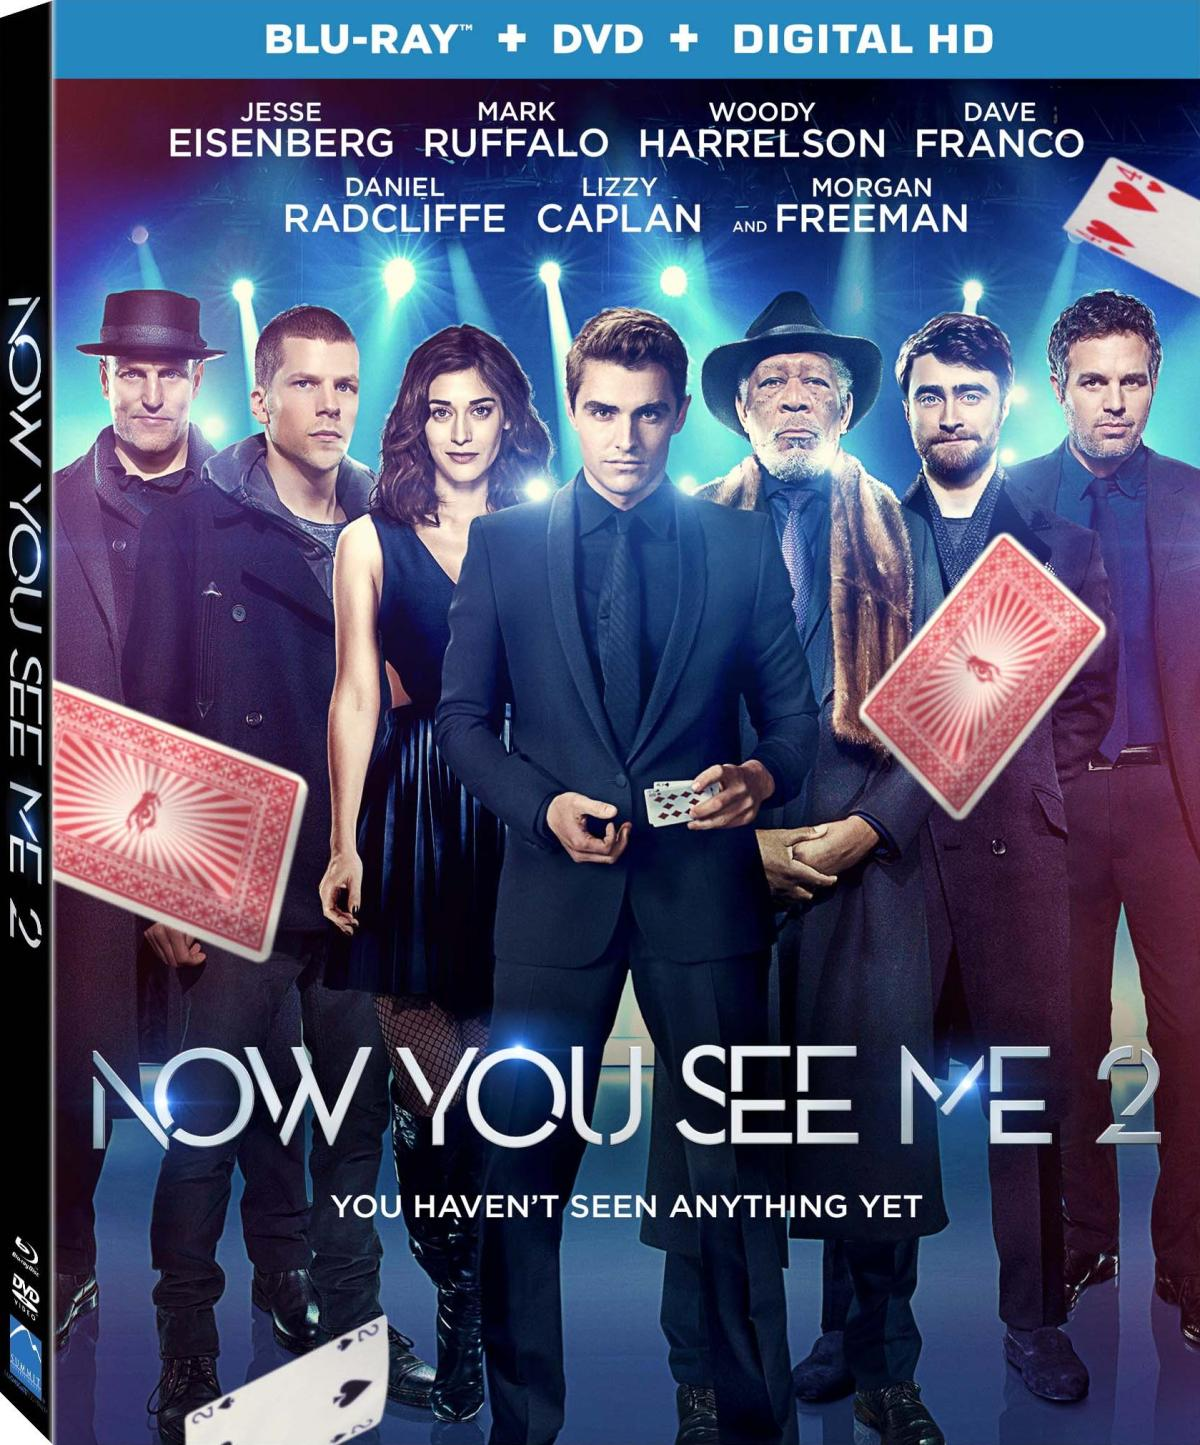 'Now You See Me 2'; Available On Digital HD August 23 & On 4K Ultra HD, Blu-ray & DVD September 6, 2016 from Lionsgate 1